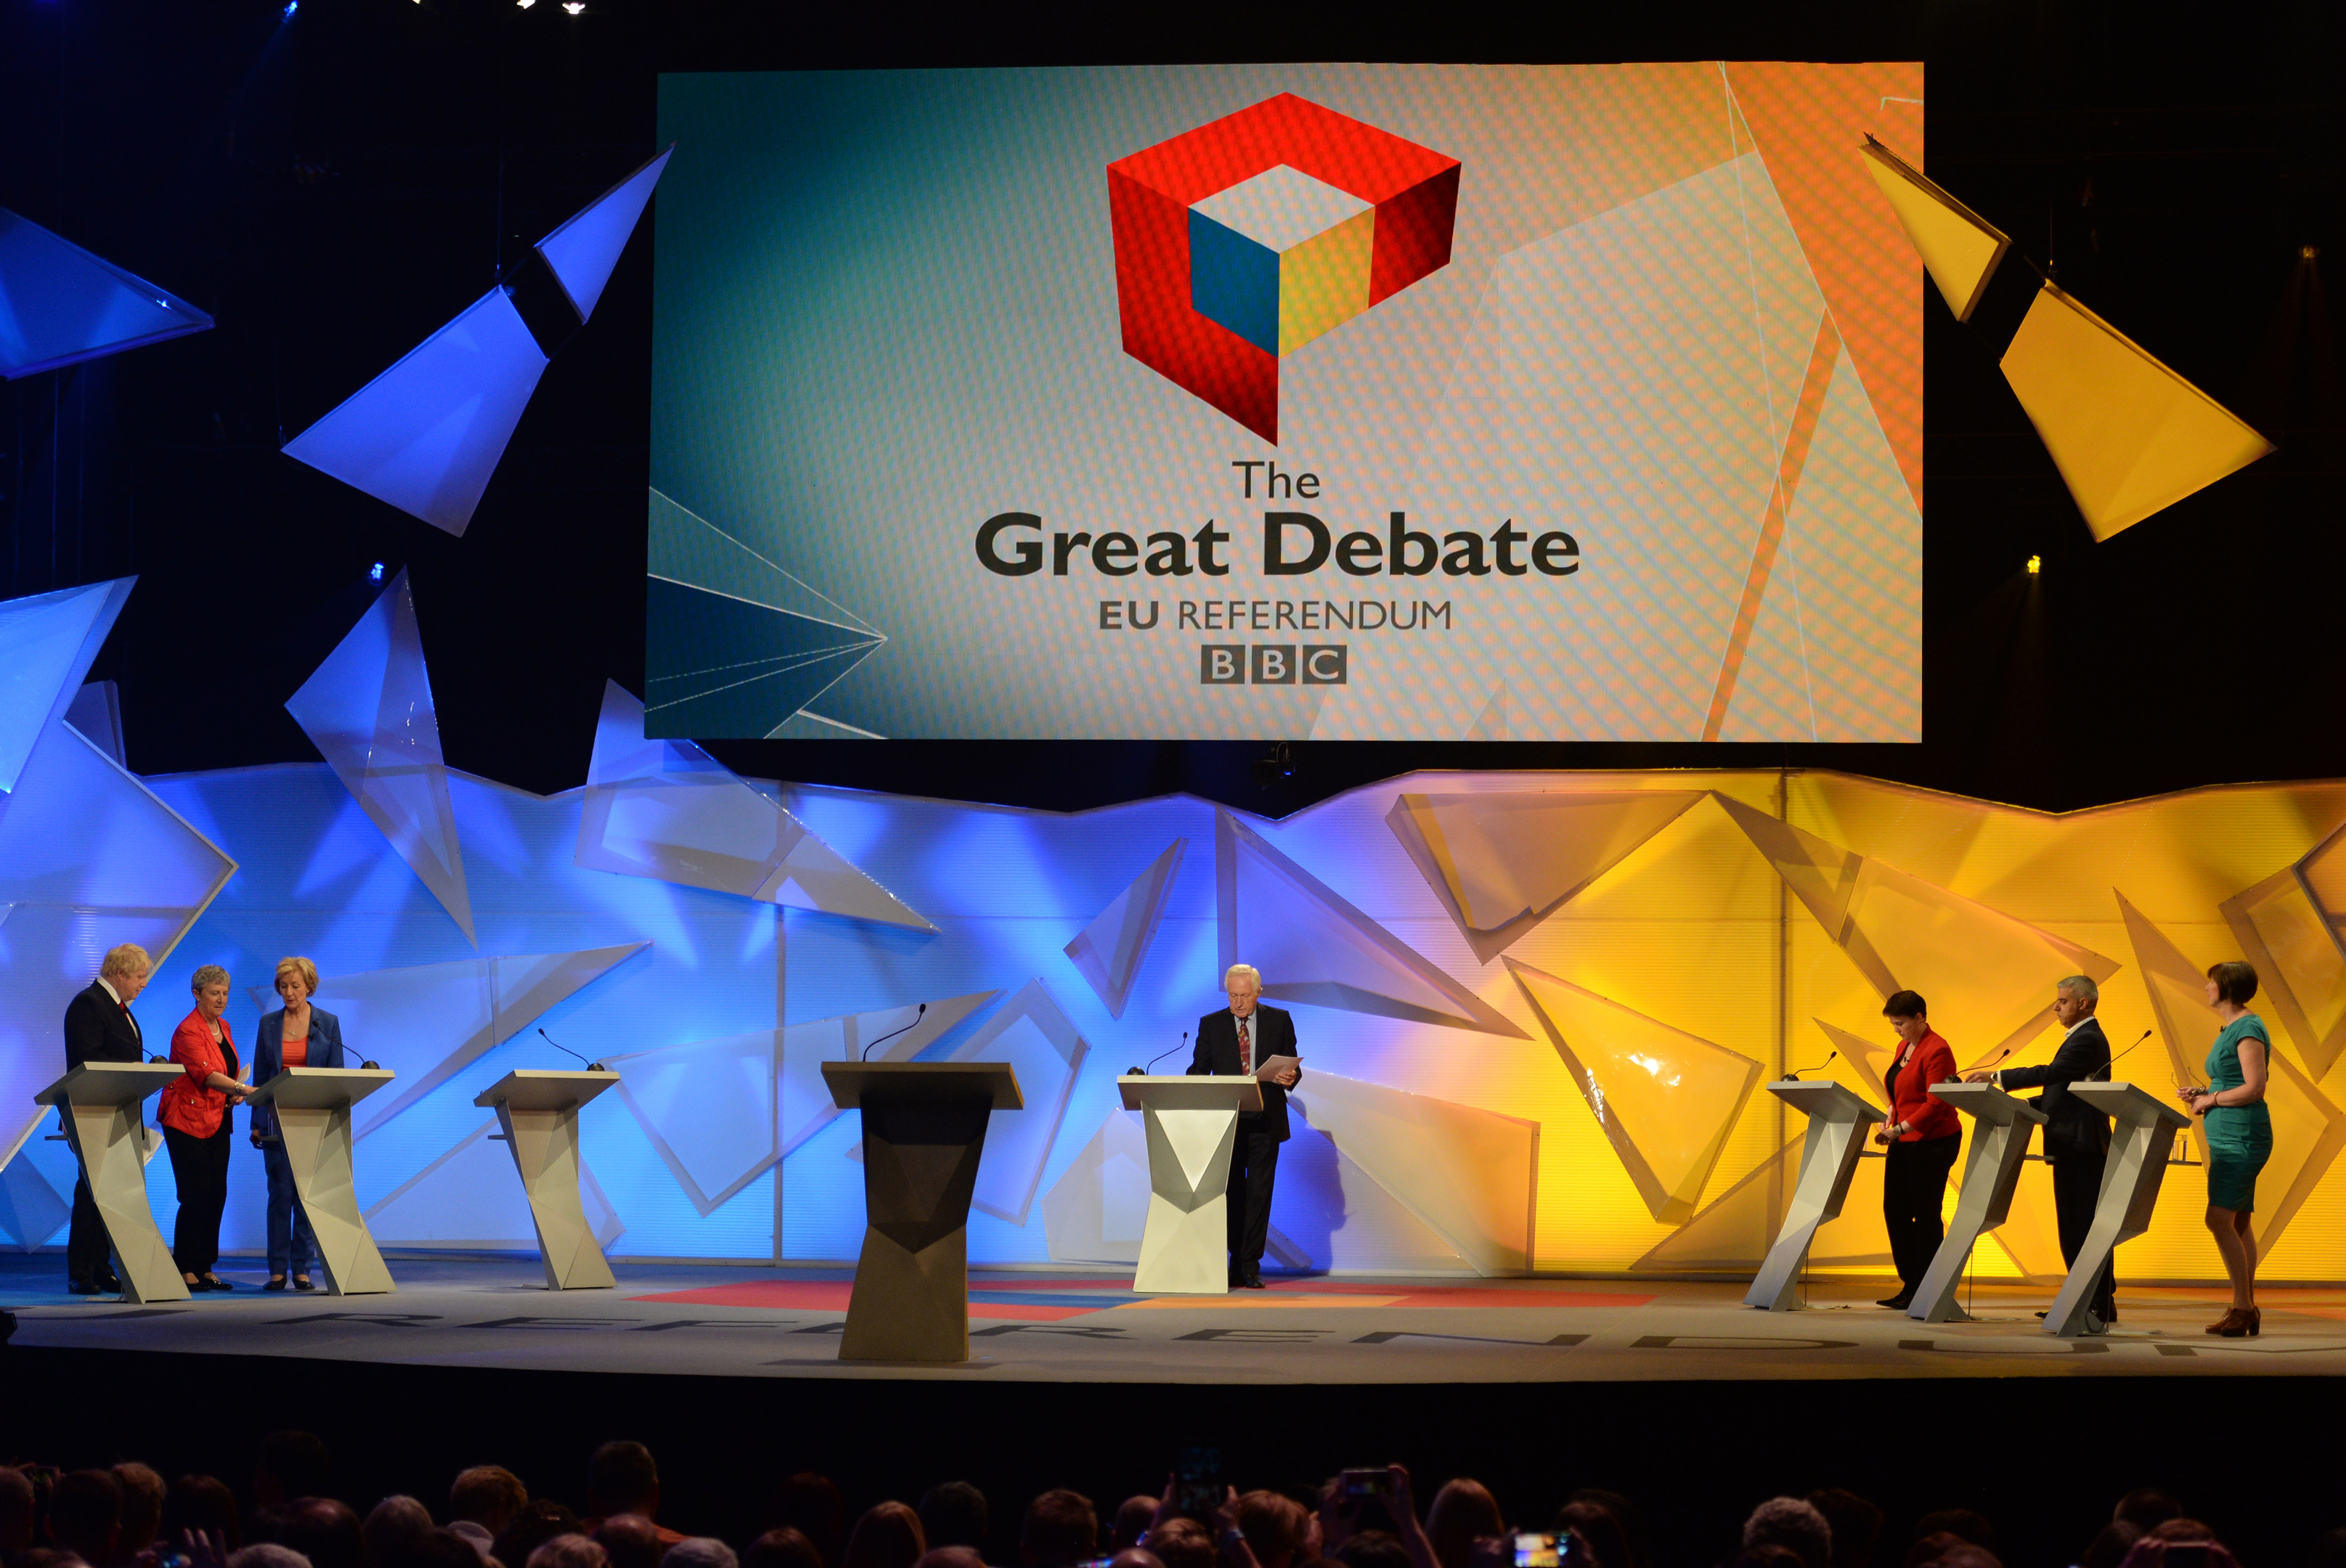 From left: Boris Johnson, Gisela Stuart, Energy Minister Andrea Leadsom, David Dimbleby, Scottish Conservative leader Ruth Davidson, Mayor of London Sadiq Khan and TUC General Secretary Frances O'Grady take part in the EU debate at Wembley Arena.